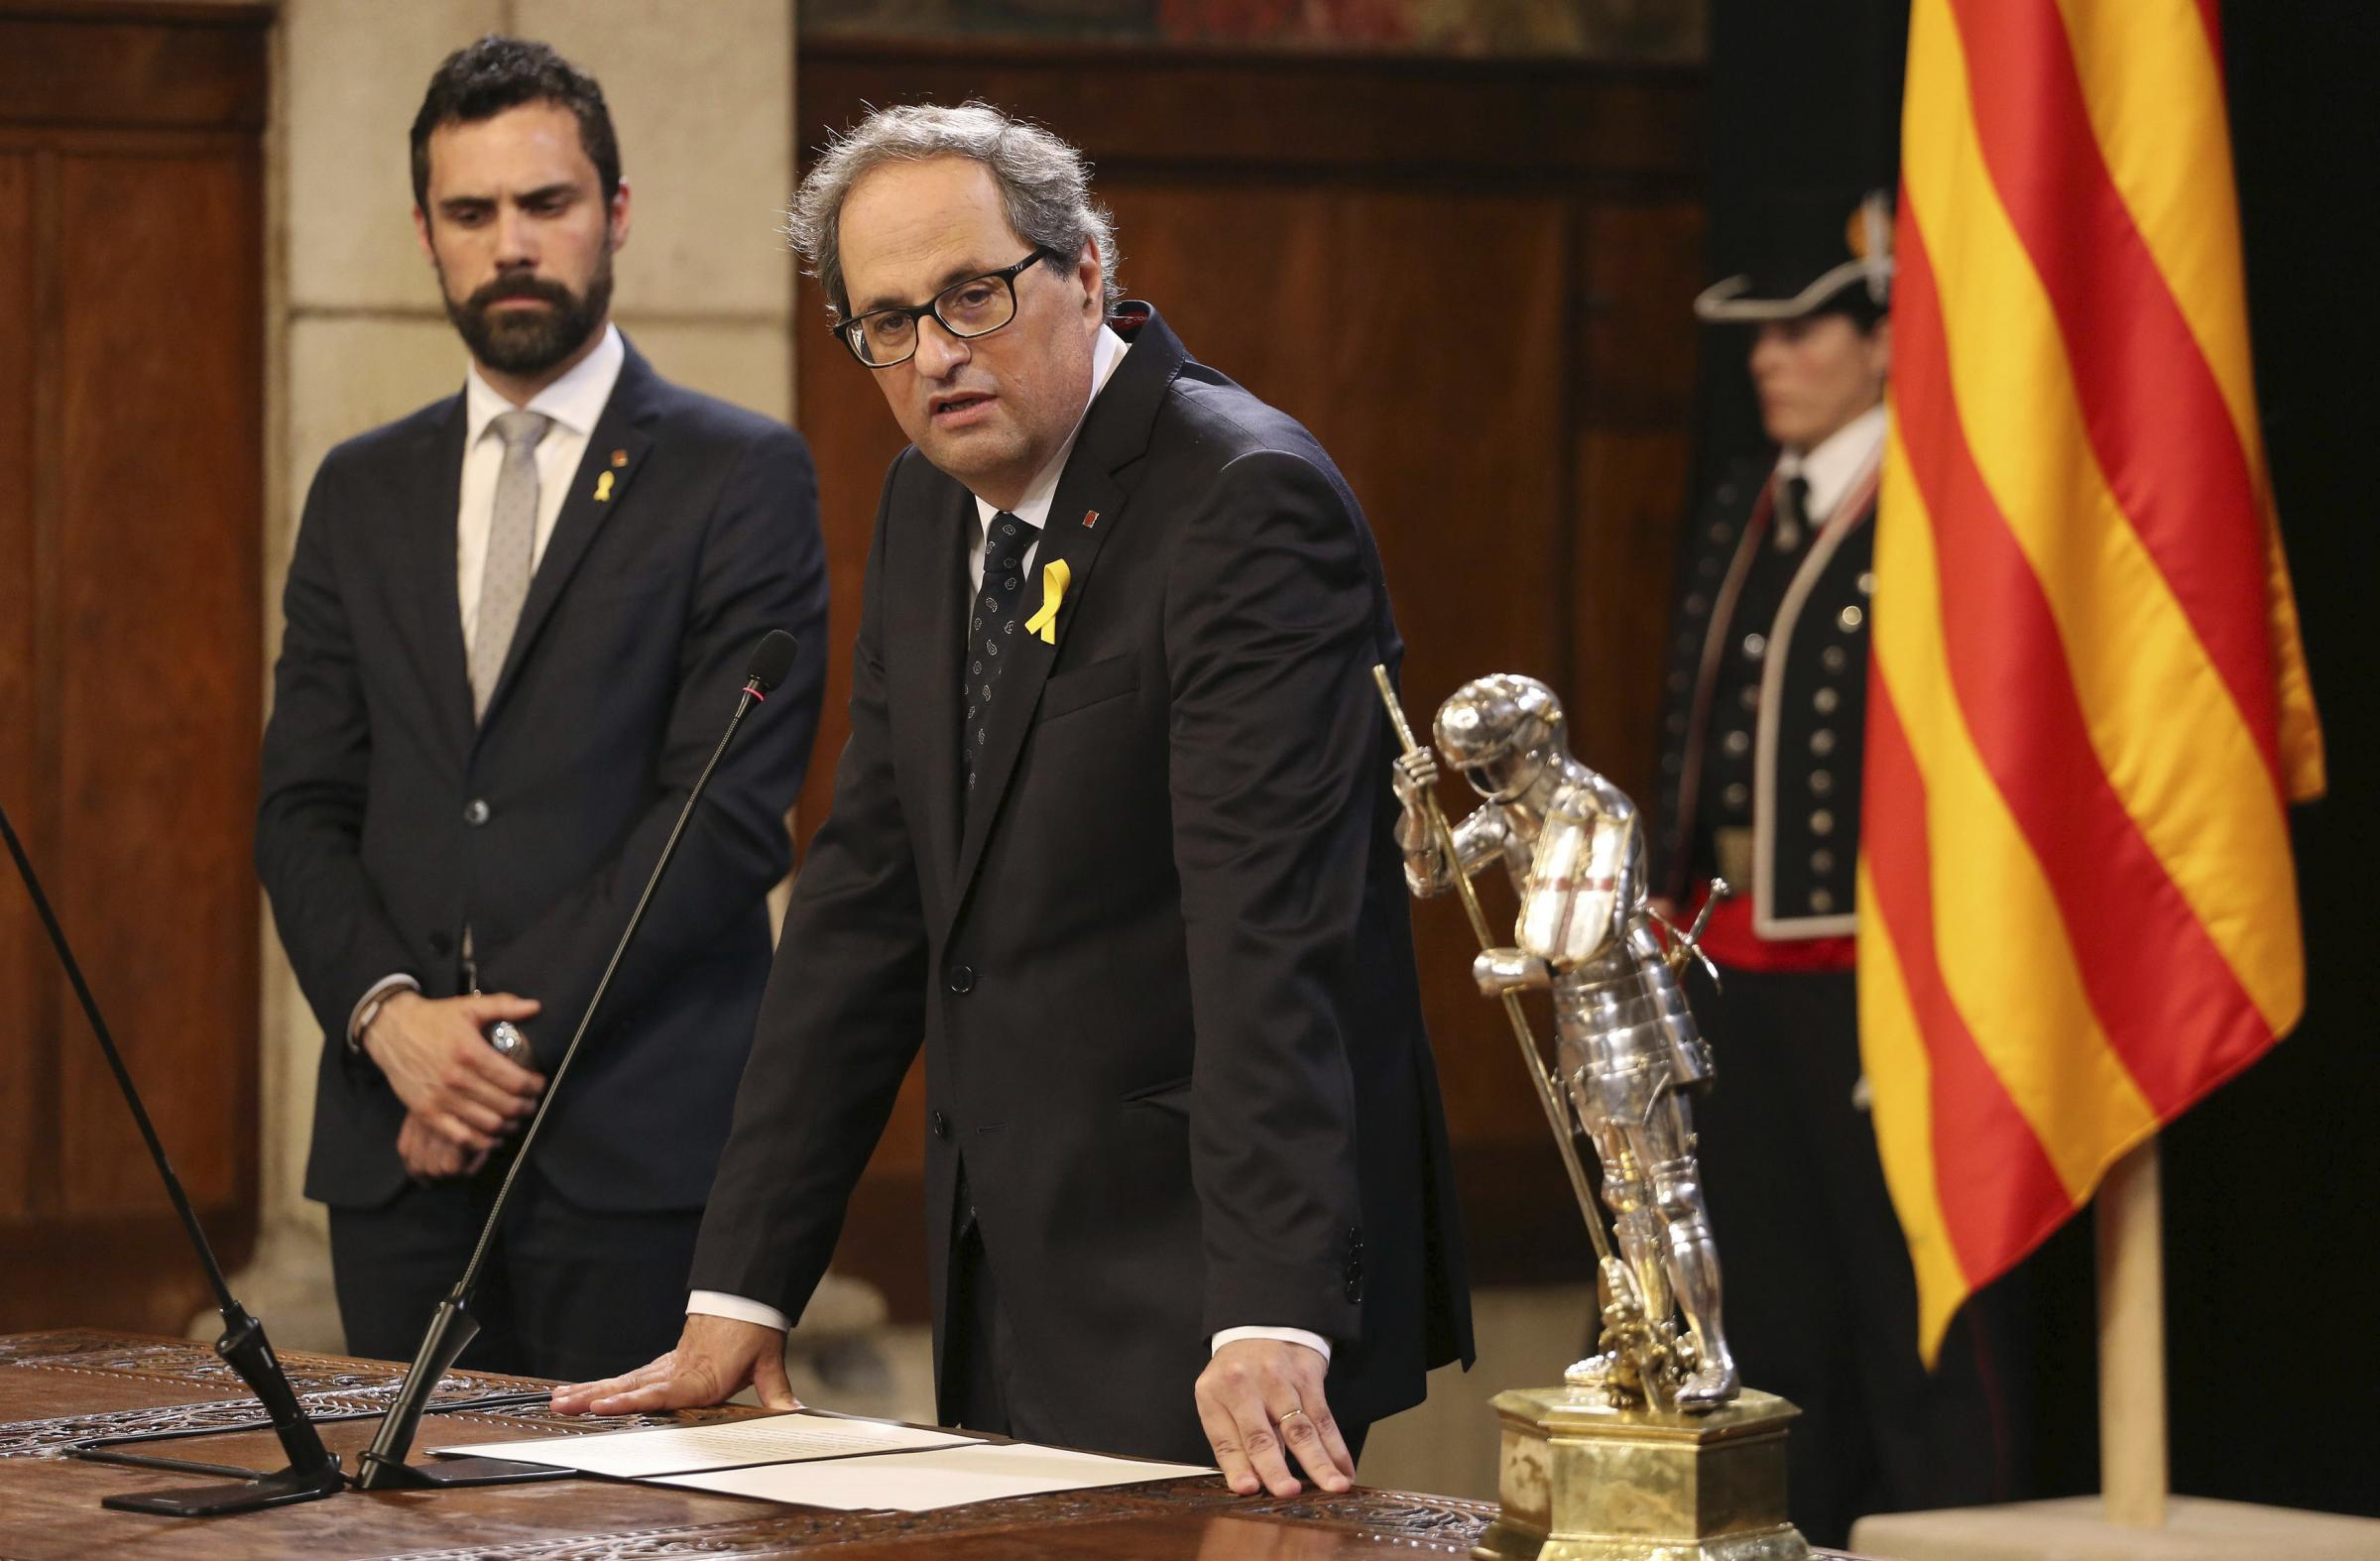 President of Catalonia Quim Torra